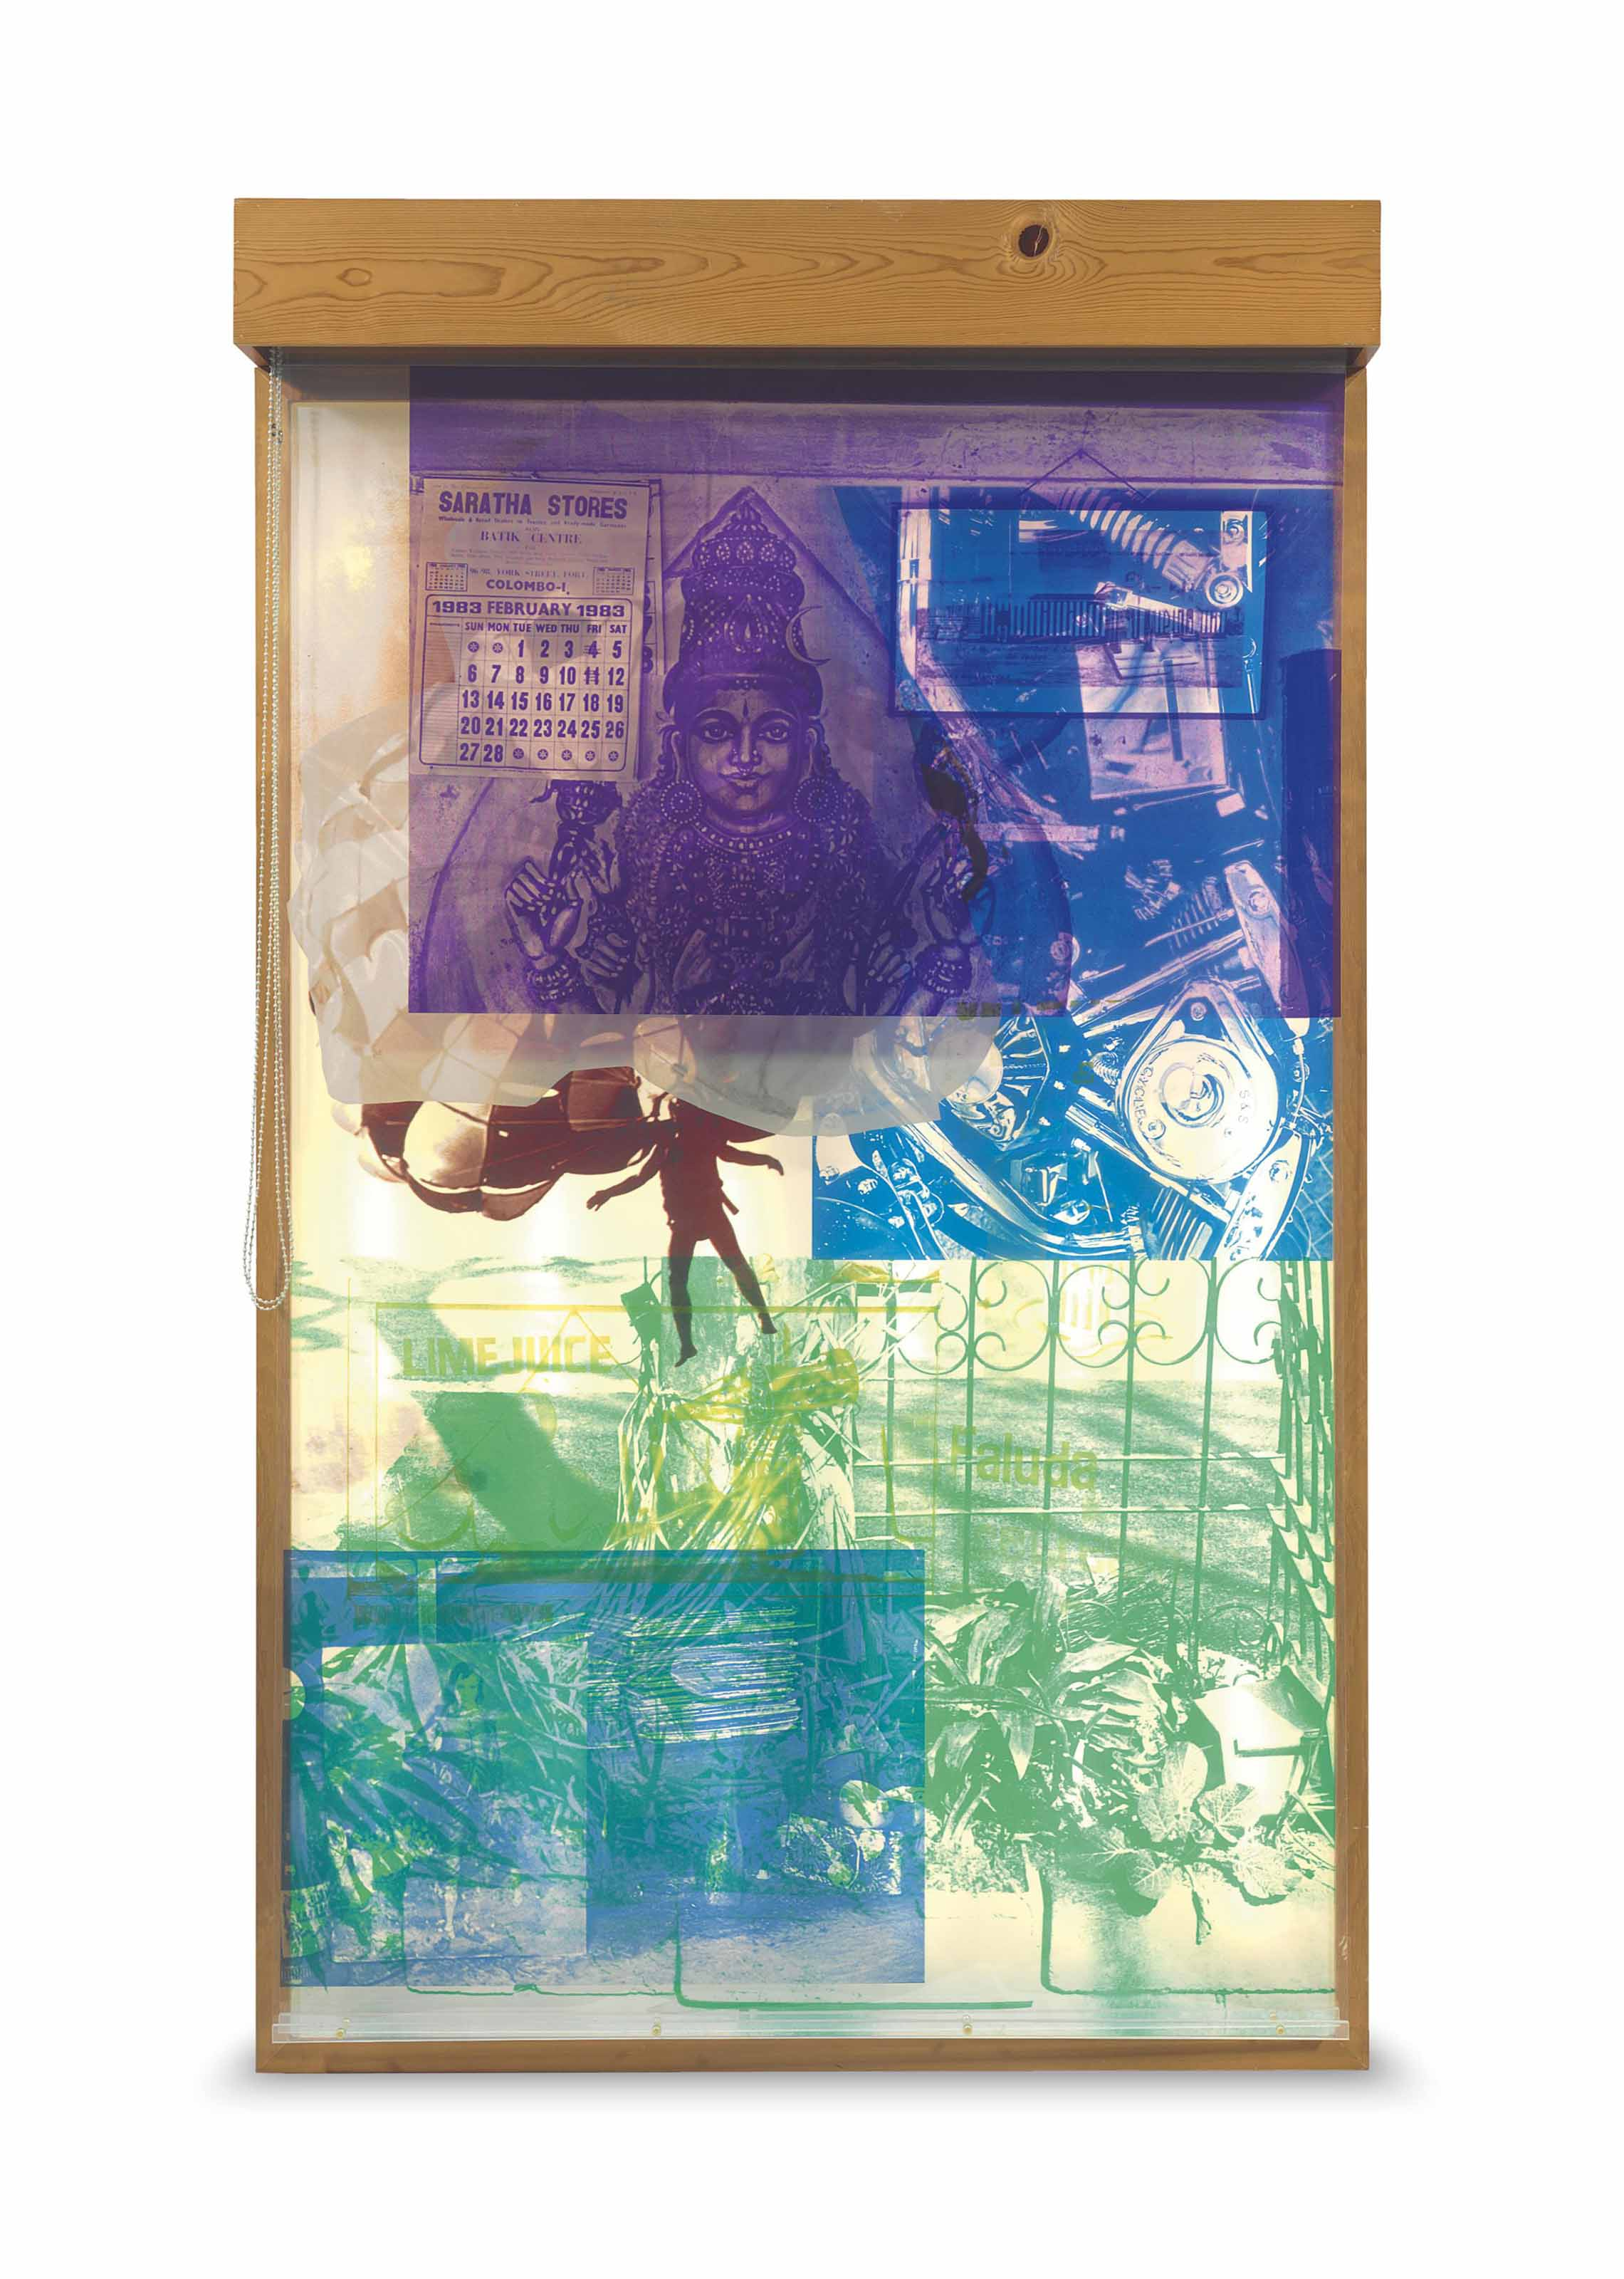 Robert Rauschenberg (1925-2008). Sling-Shots Lit #3, 1985. Lithograph and screenprint on paper and assemblage with sailcloth, Mylar, wooden lightbox, fluorescent light fixture, aluminum moveable window shade system and Plexiglas bars. 84 1/2 x 50 1/4 x 12 1/2 in. (214.6 x 127.6 x 31.8 cm). This work is from an edition of 25 plus seven artist's proofs.